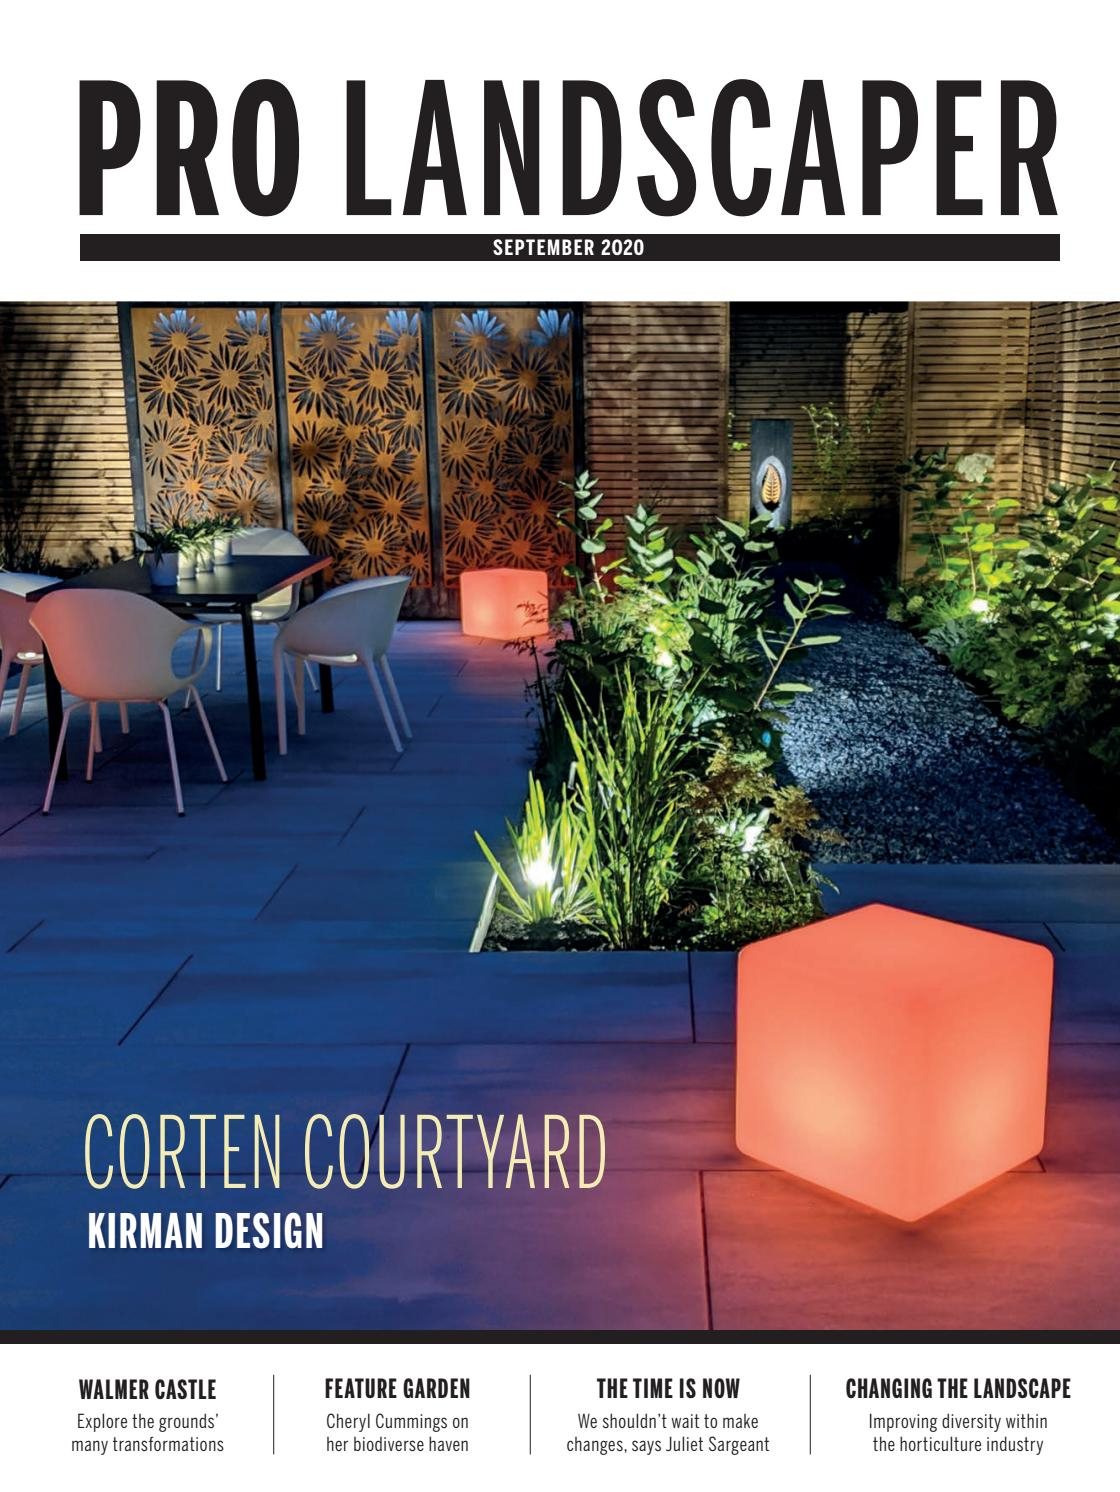 Pro Landscaper September 2020Eljays44 – Issuu Intended For Glendale Heights Birds And Butterflies Garden Stools (View 25 of 25)